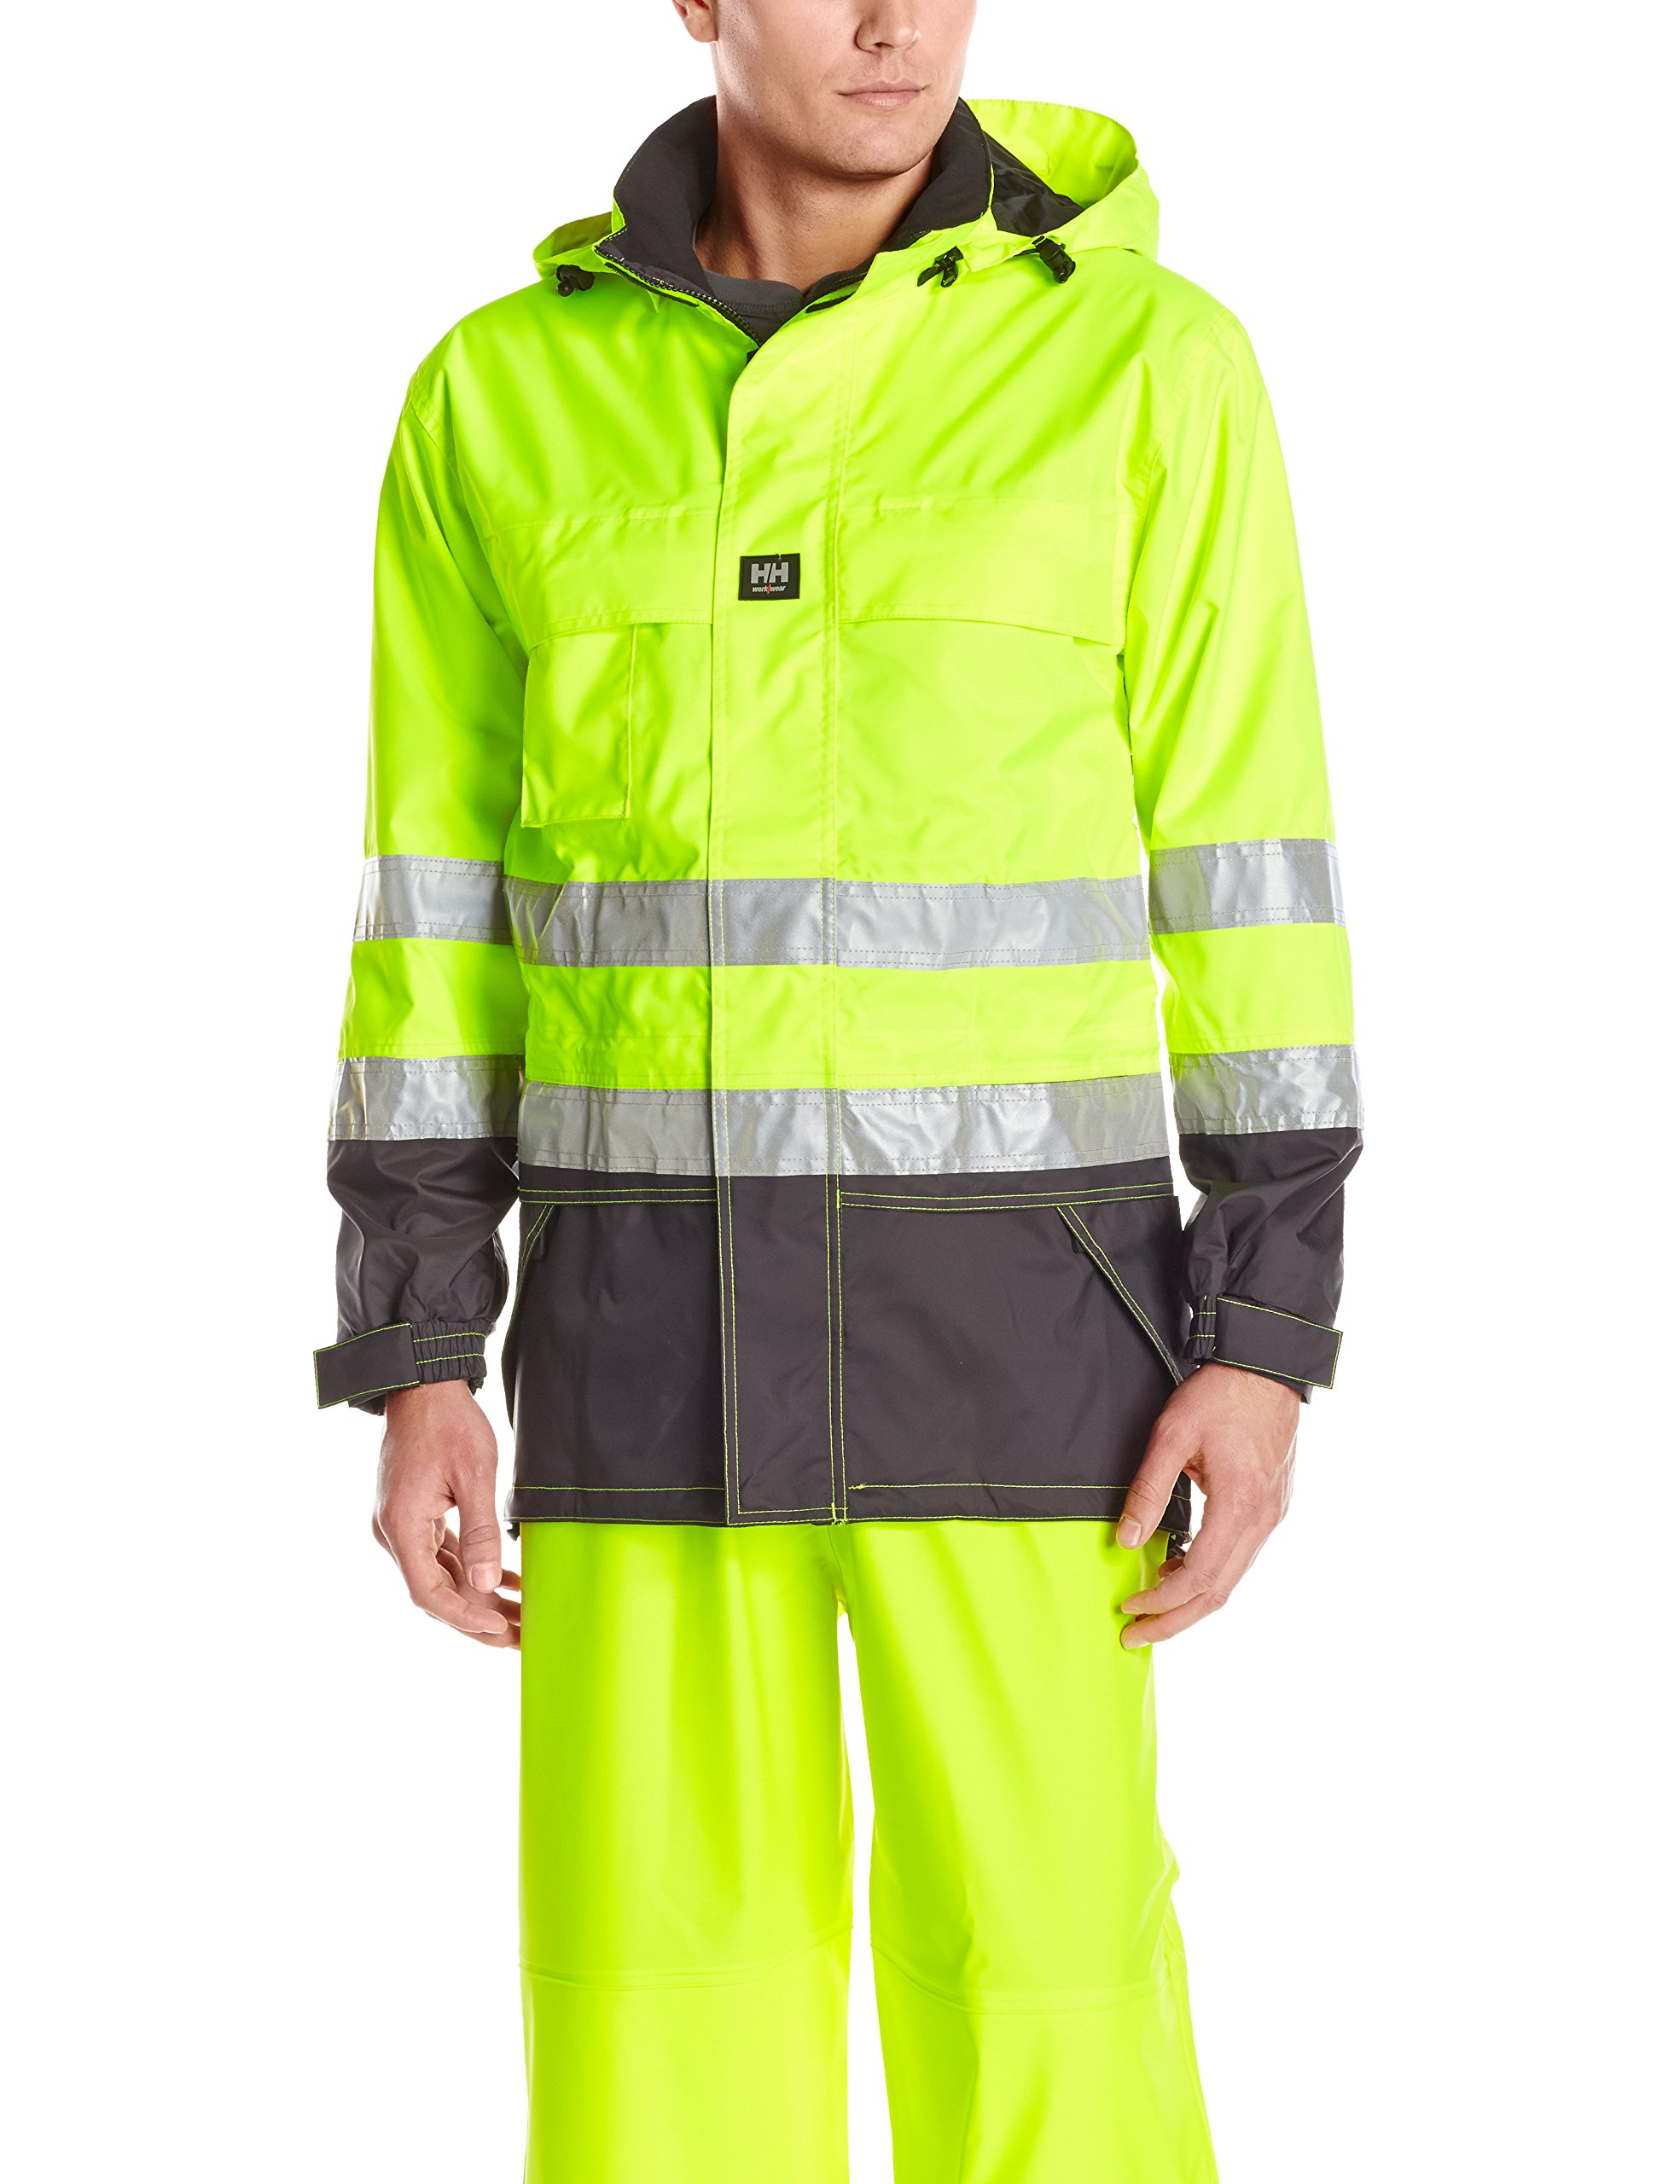 Helly Hansen Potsdam Jacket, En471 Yellow/Charcoal, 3XL